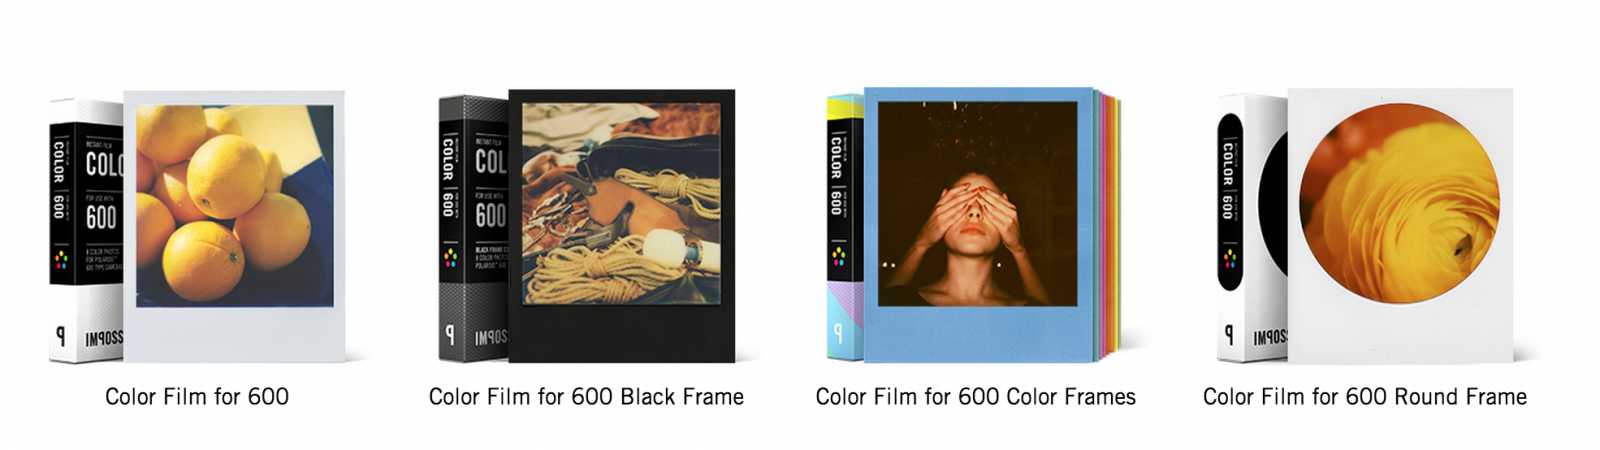 Test, Impossible Project, différents films Impossible couleurs.